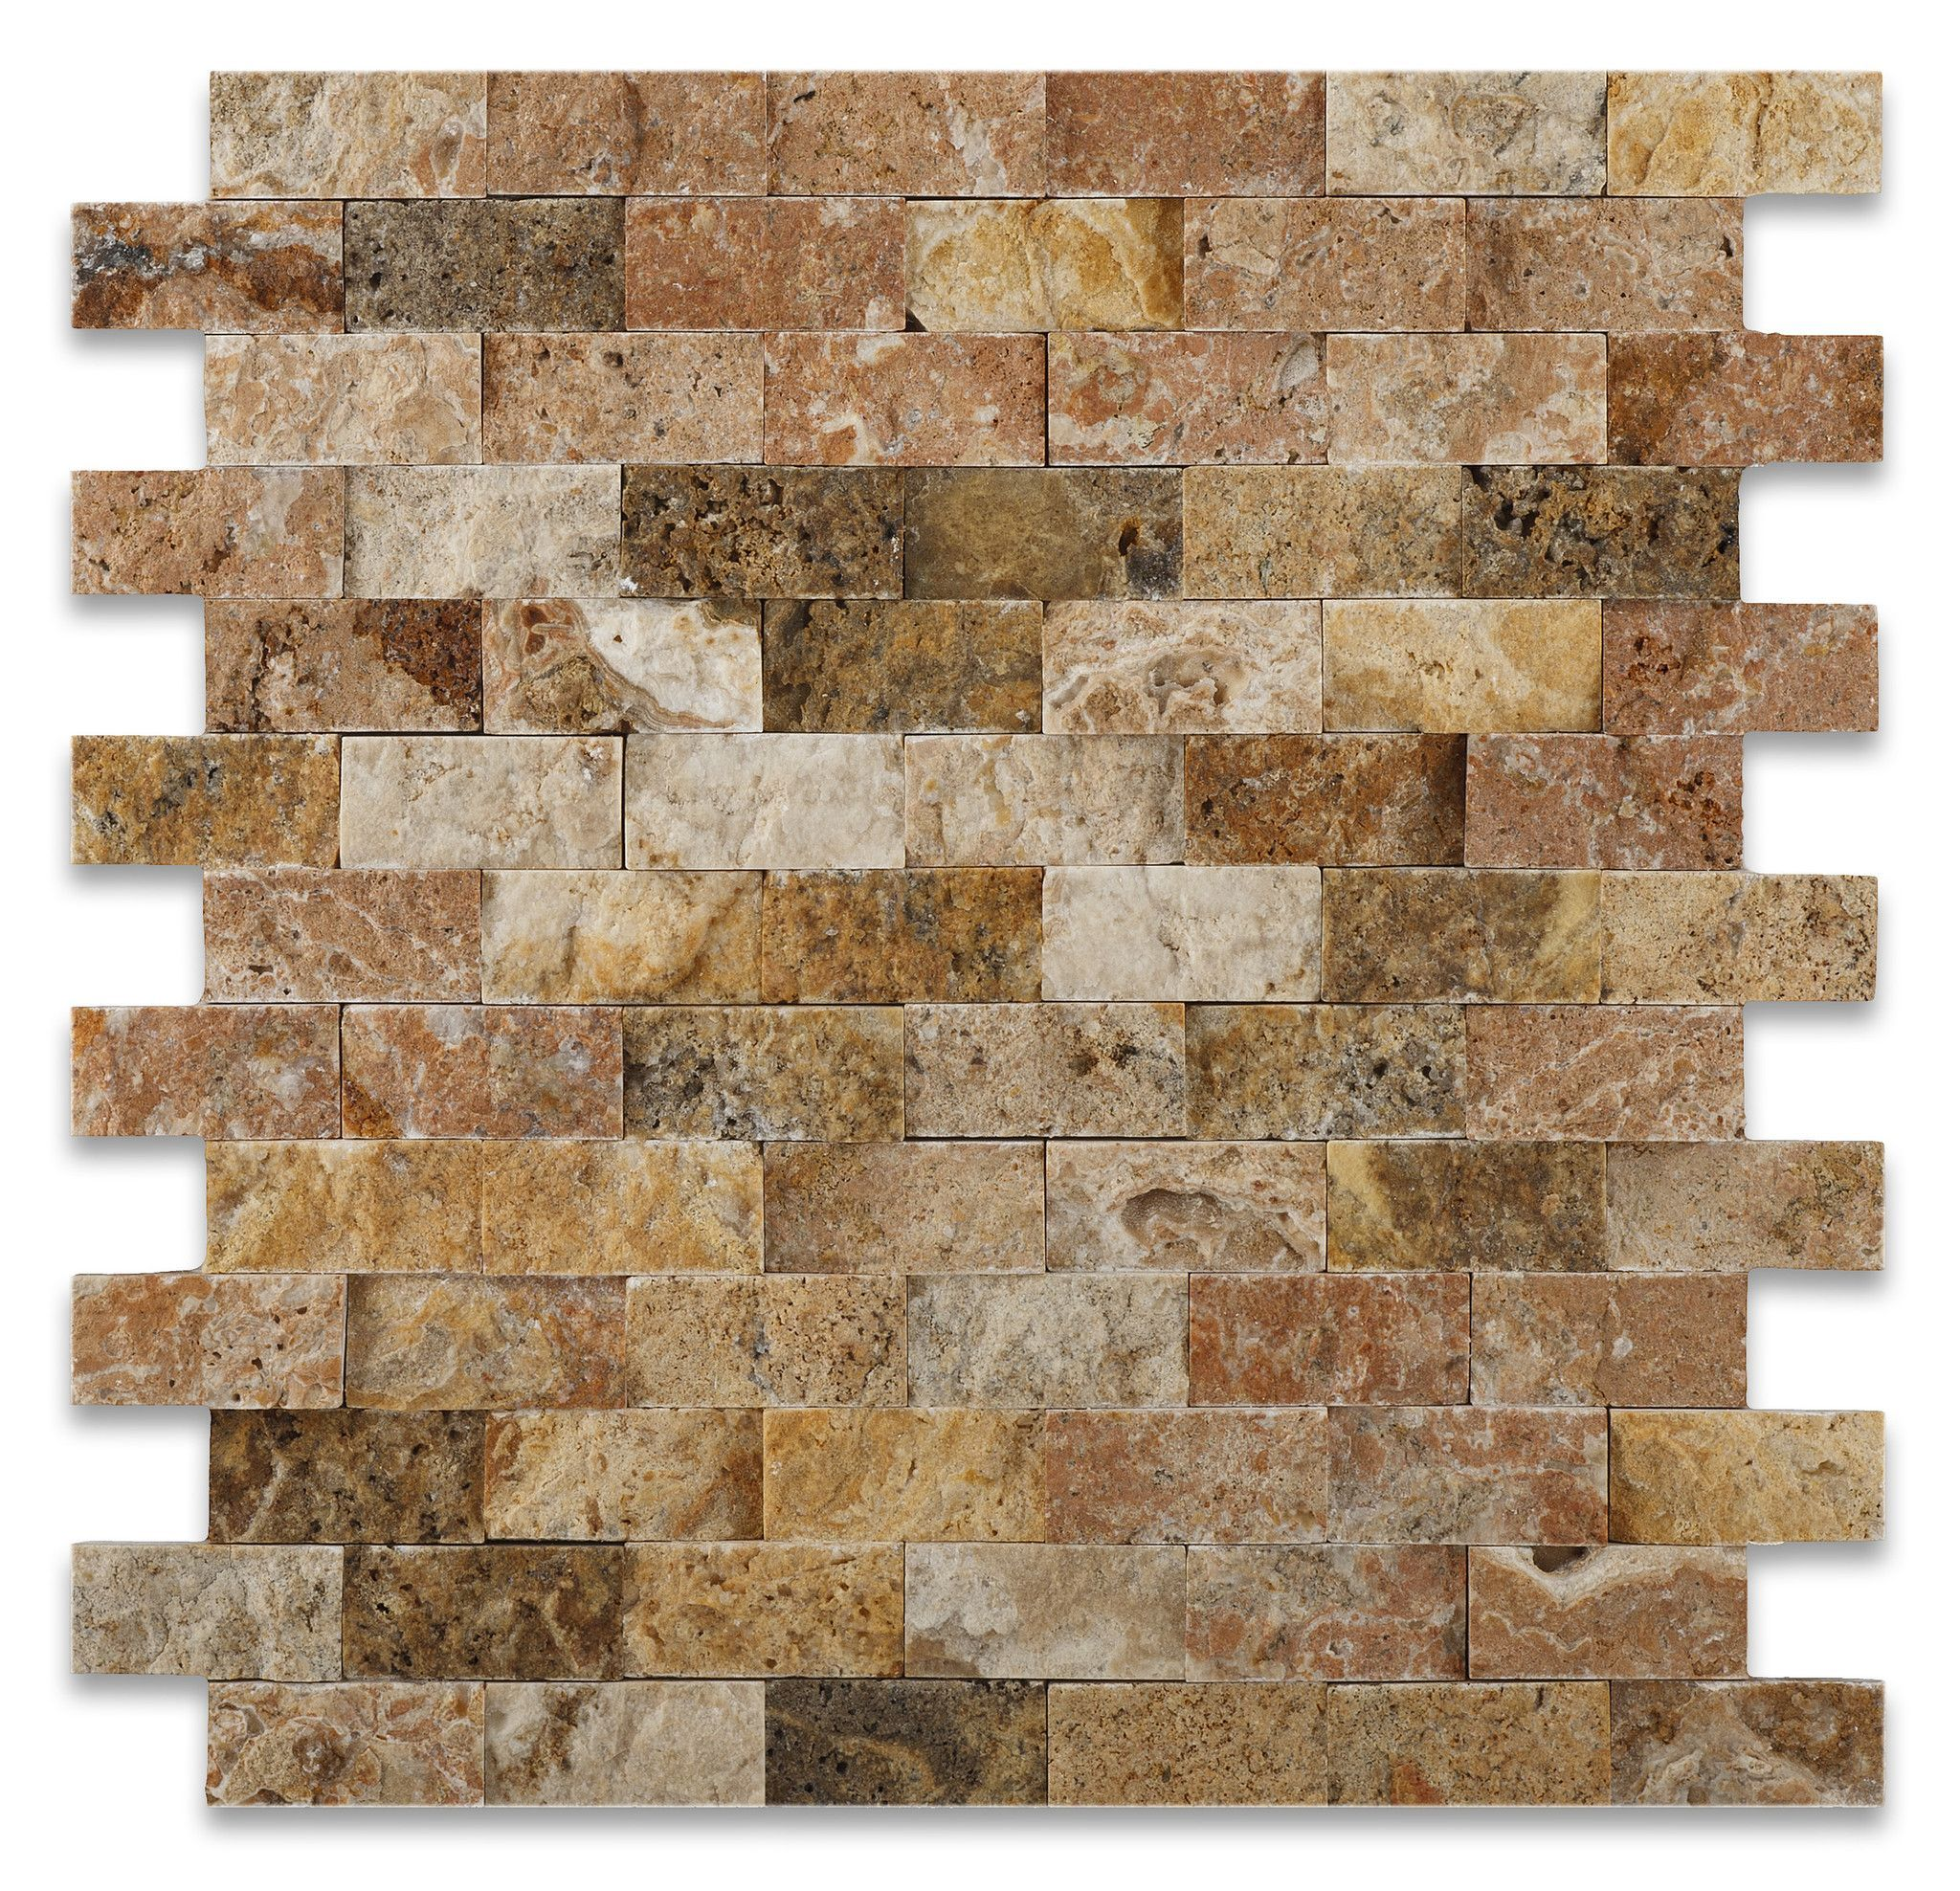 1 X 2 Scabos Travertine Split Faced Brick Mosaic Tile Travertine Mosaic Tiles Outdoor Kitchen Countertops